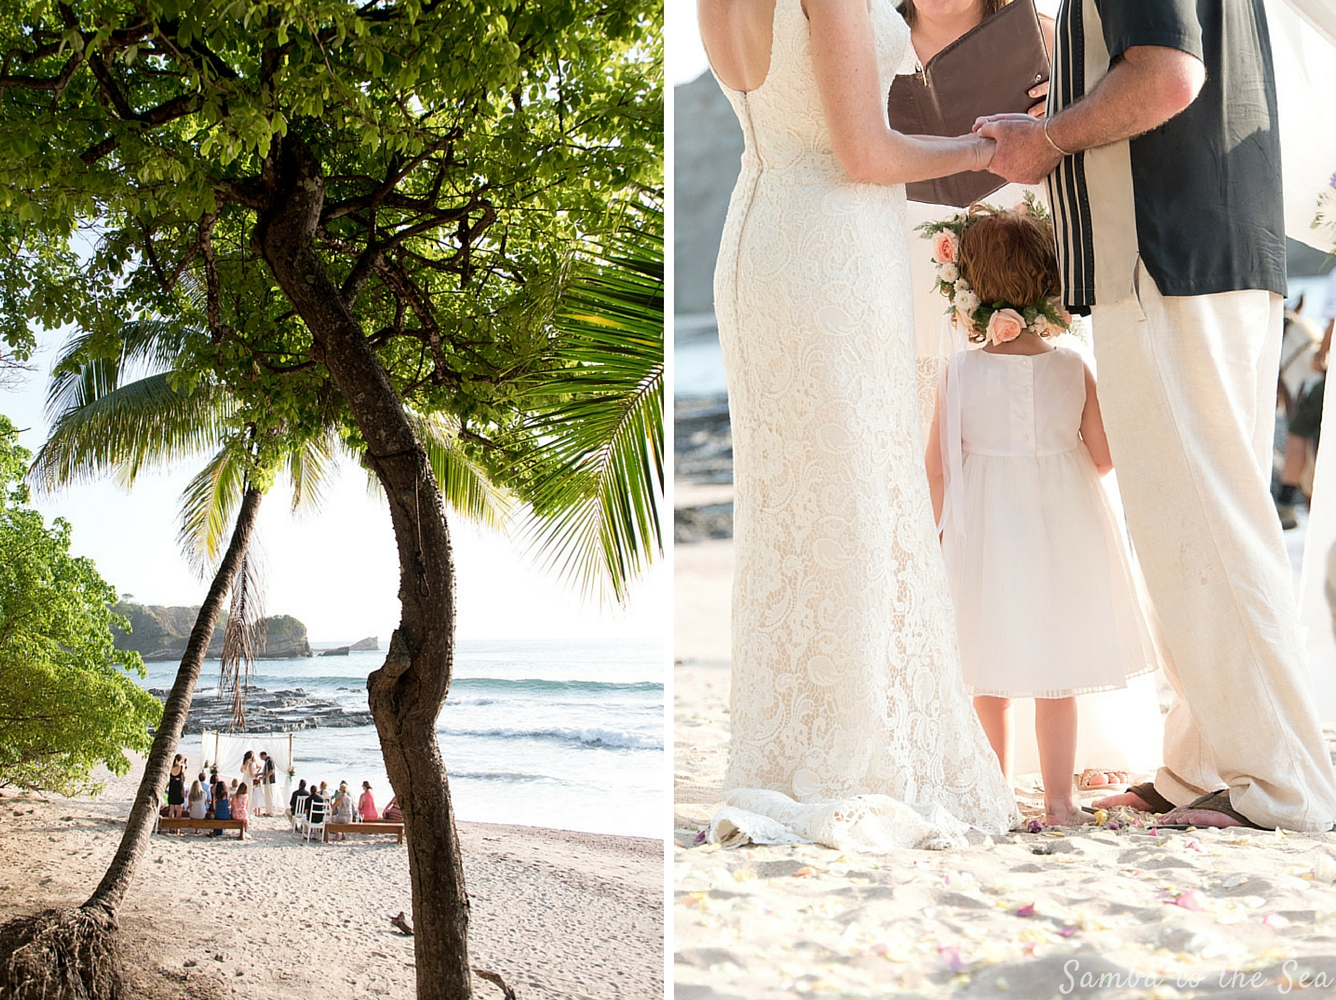 Wedding at La Luna Restaurant in Playa Pelada in Nosara, Costa Rica by Weddings Nosara. Photographed by Kristen M. Brown, Samba to the Sea Photography.